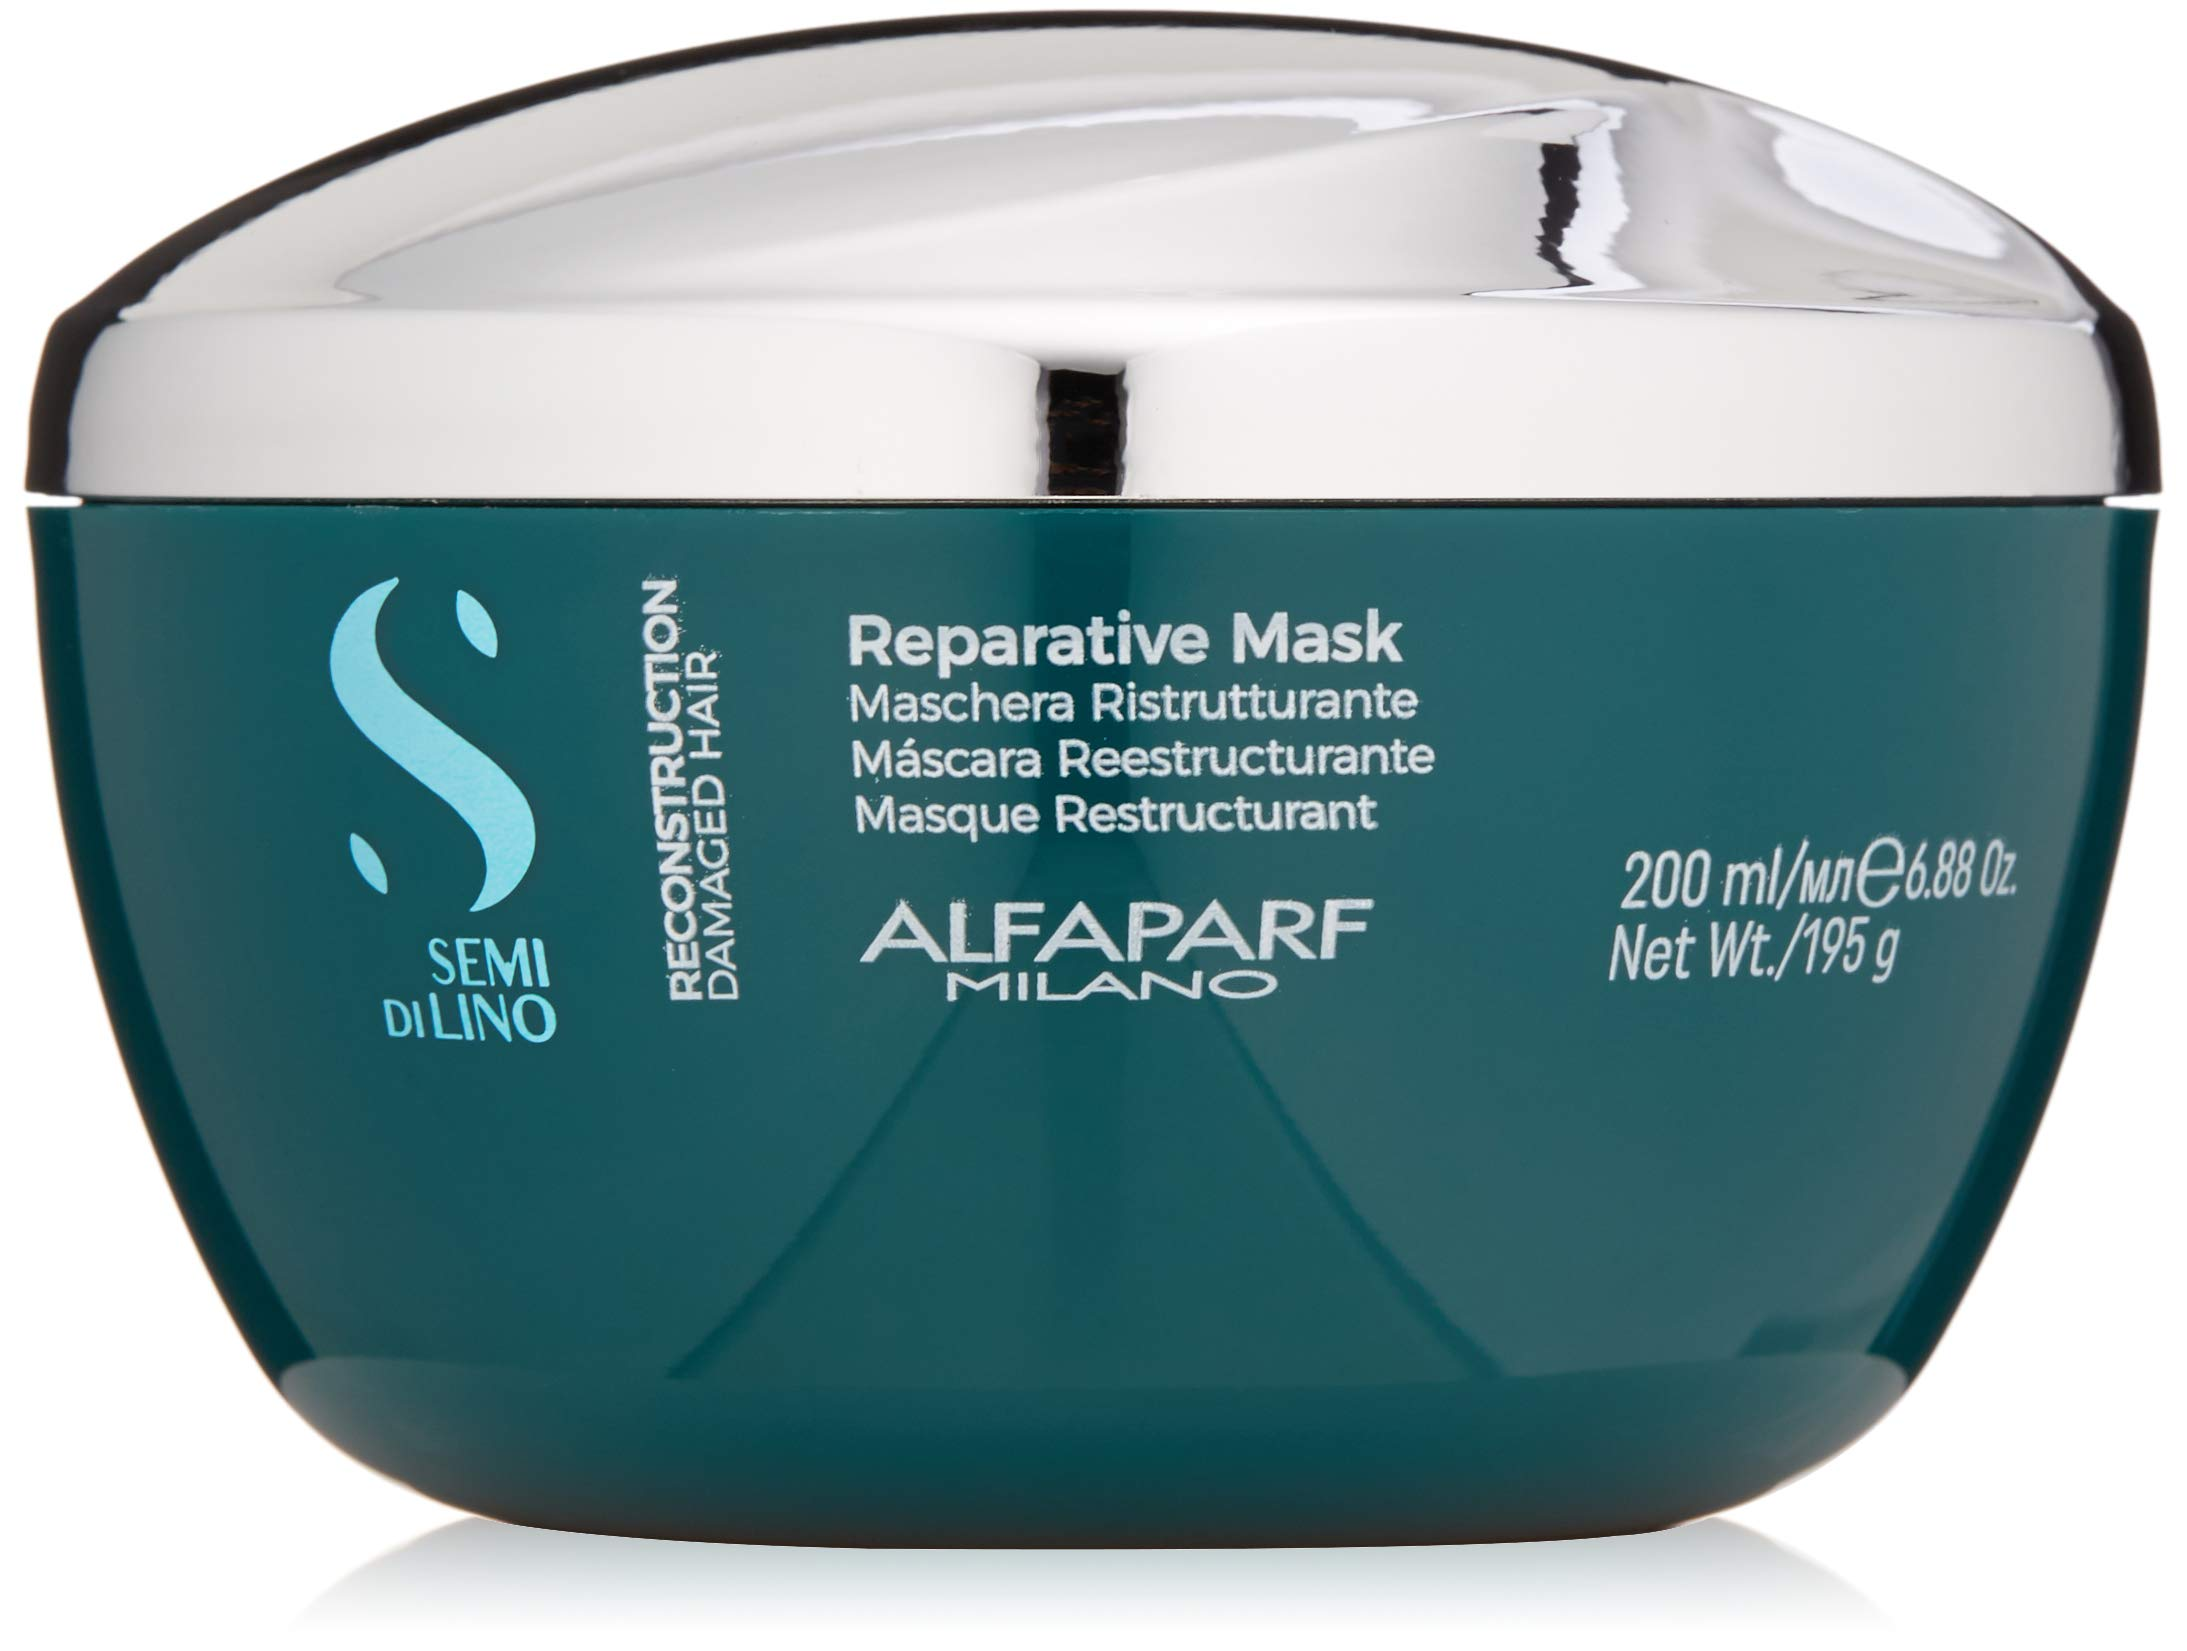 Alfaparf Milano Semi Di Lino Reconstruction Reparative Mask for Damaged Hair, Sulfate Free - Safe on Color Treated Hair - SLS, Paraben and Paraffin Free - Professional Salon Quality by Alfaparf Milano